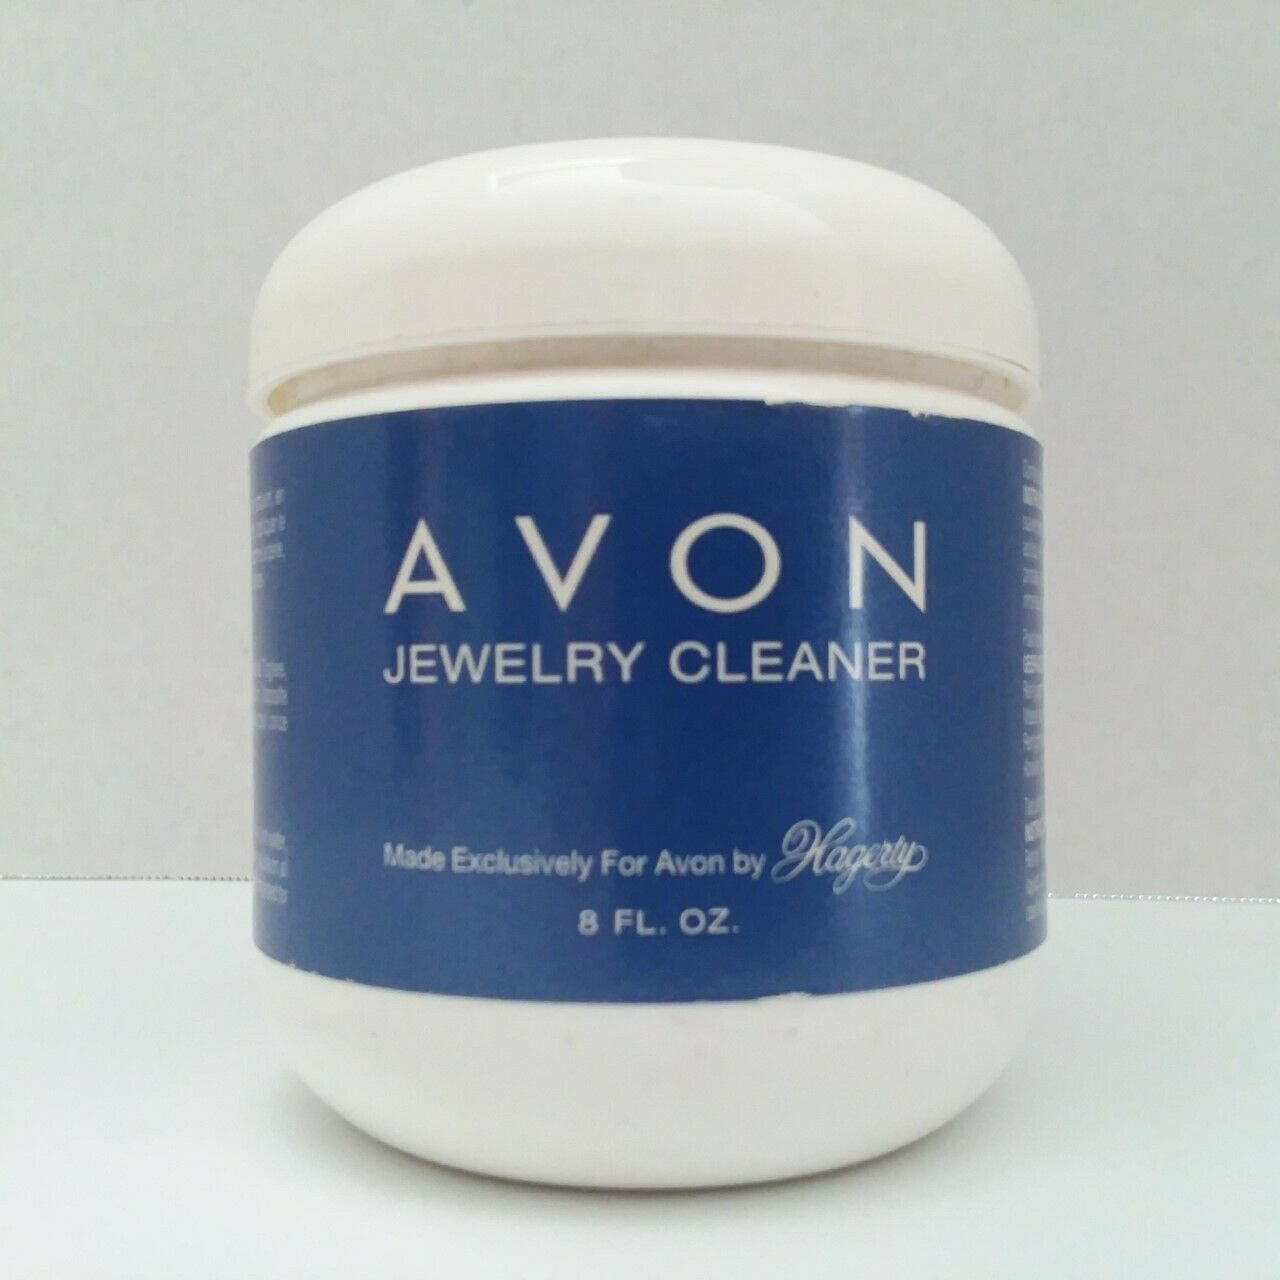 Avon Jewelry Cleaner by Hagerty